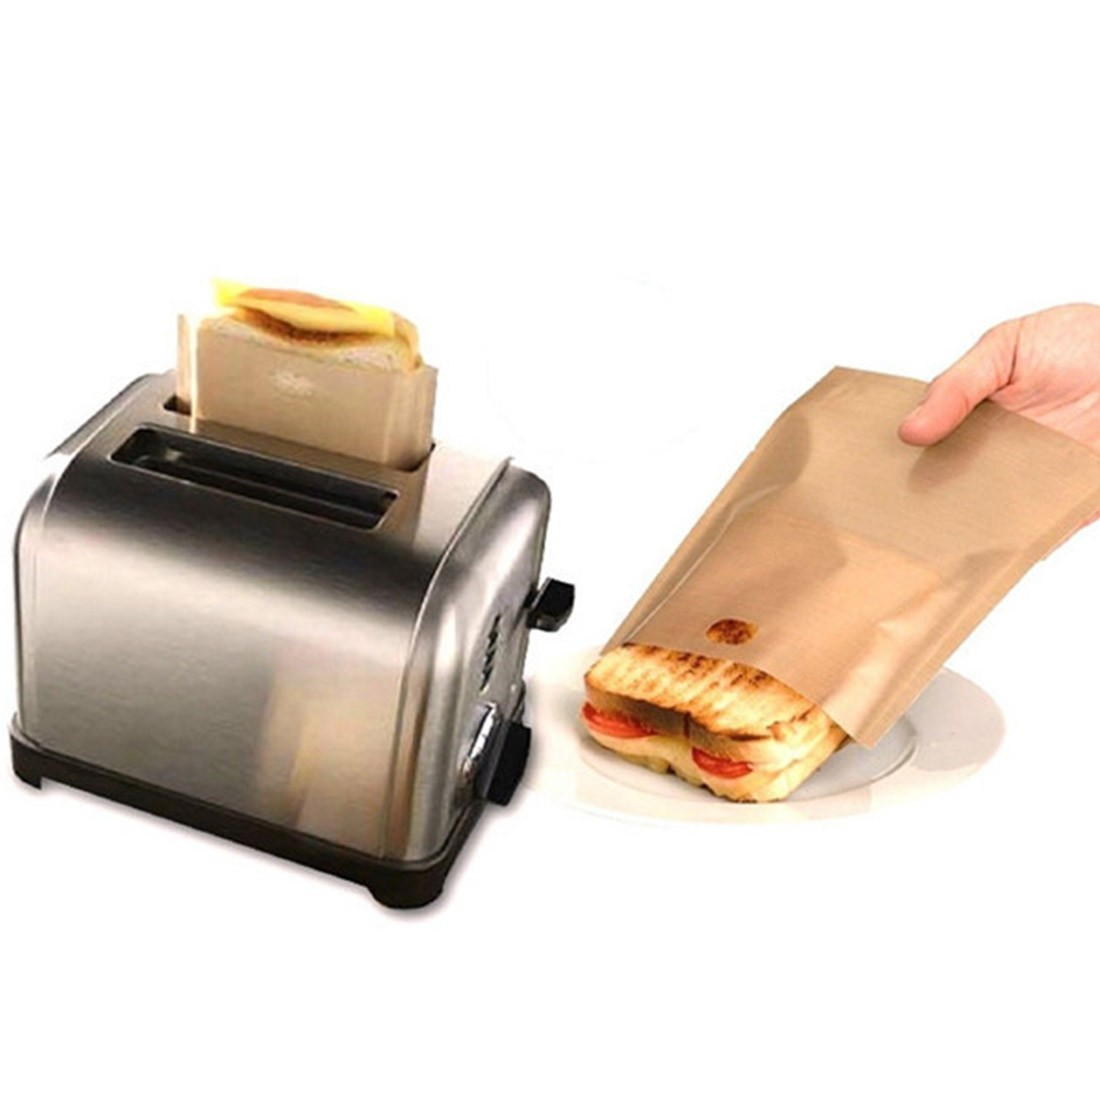 Bargain - FREE - 100% FREE - Reusable Toaster Sandwich Bag - That Daily Deal